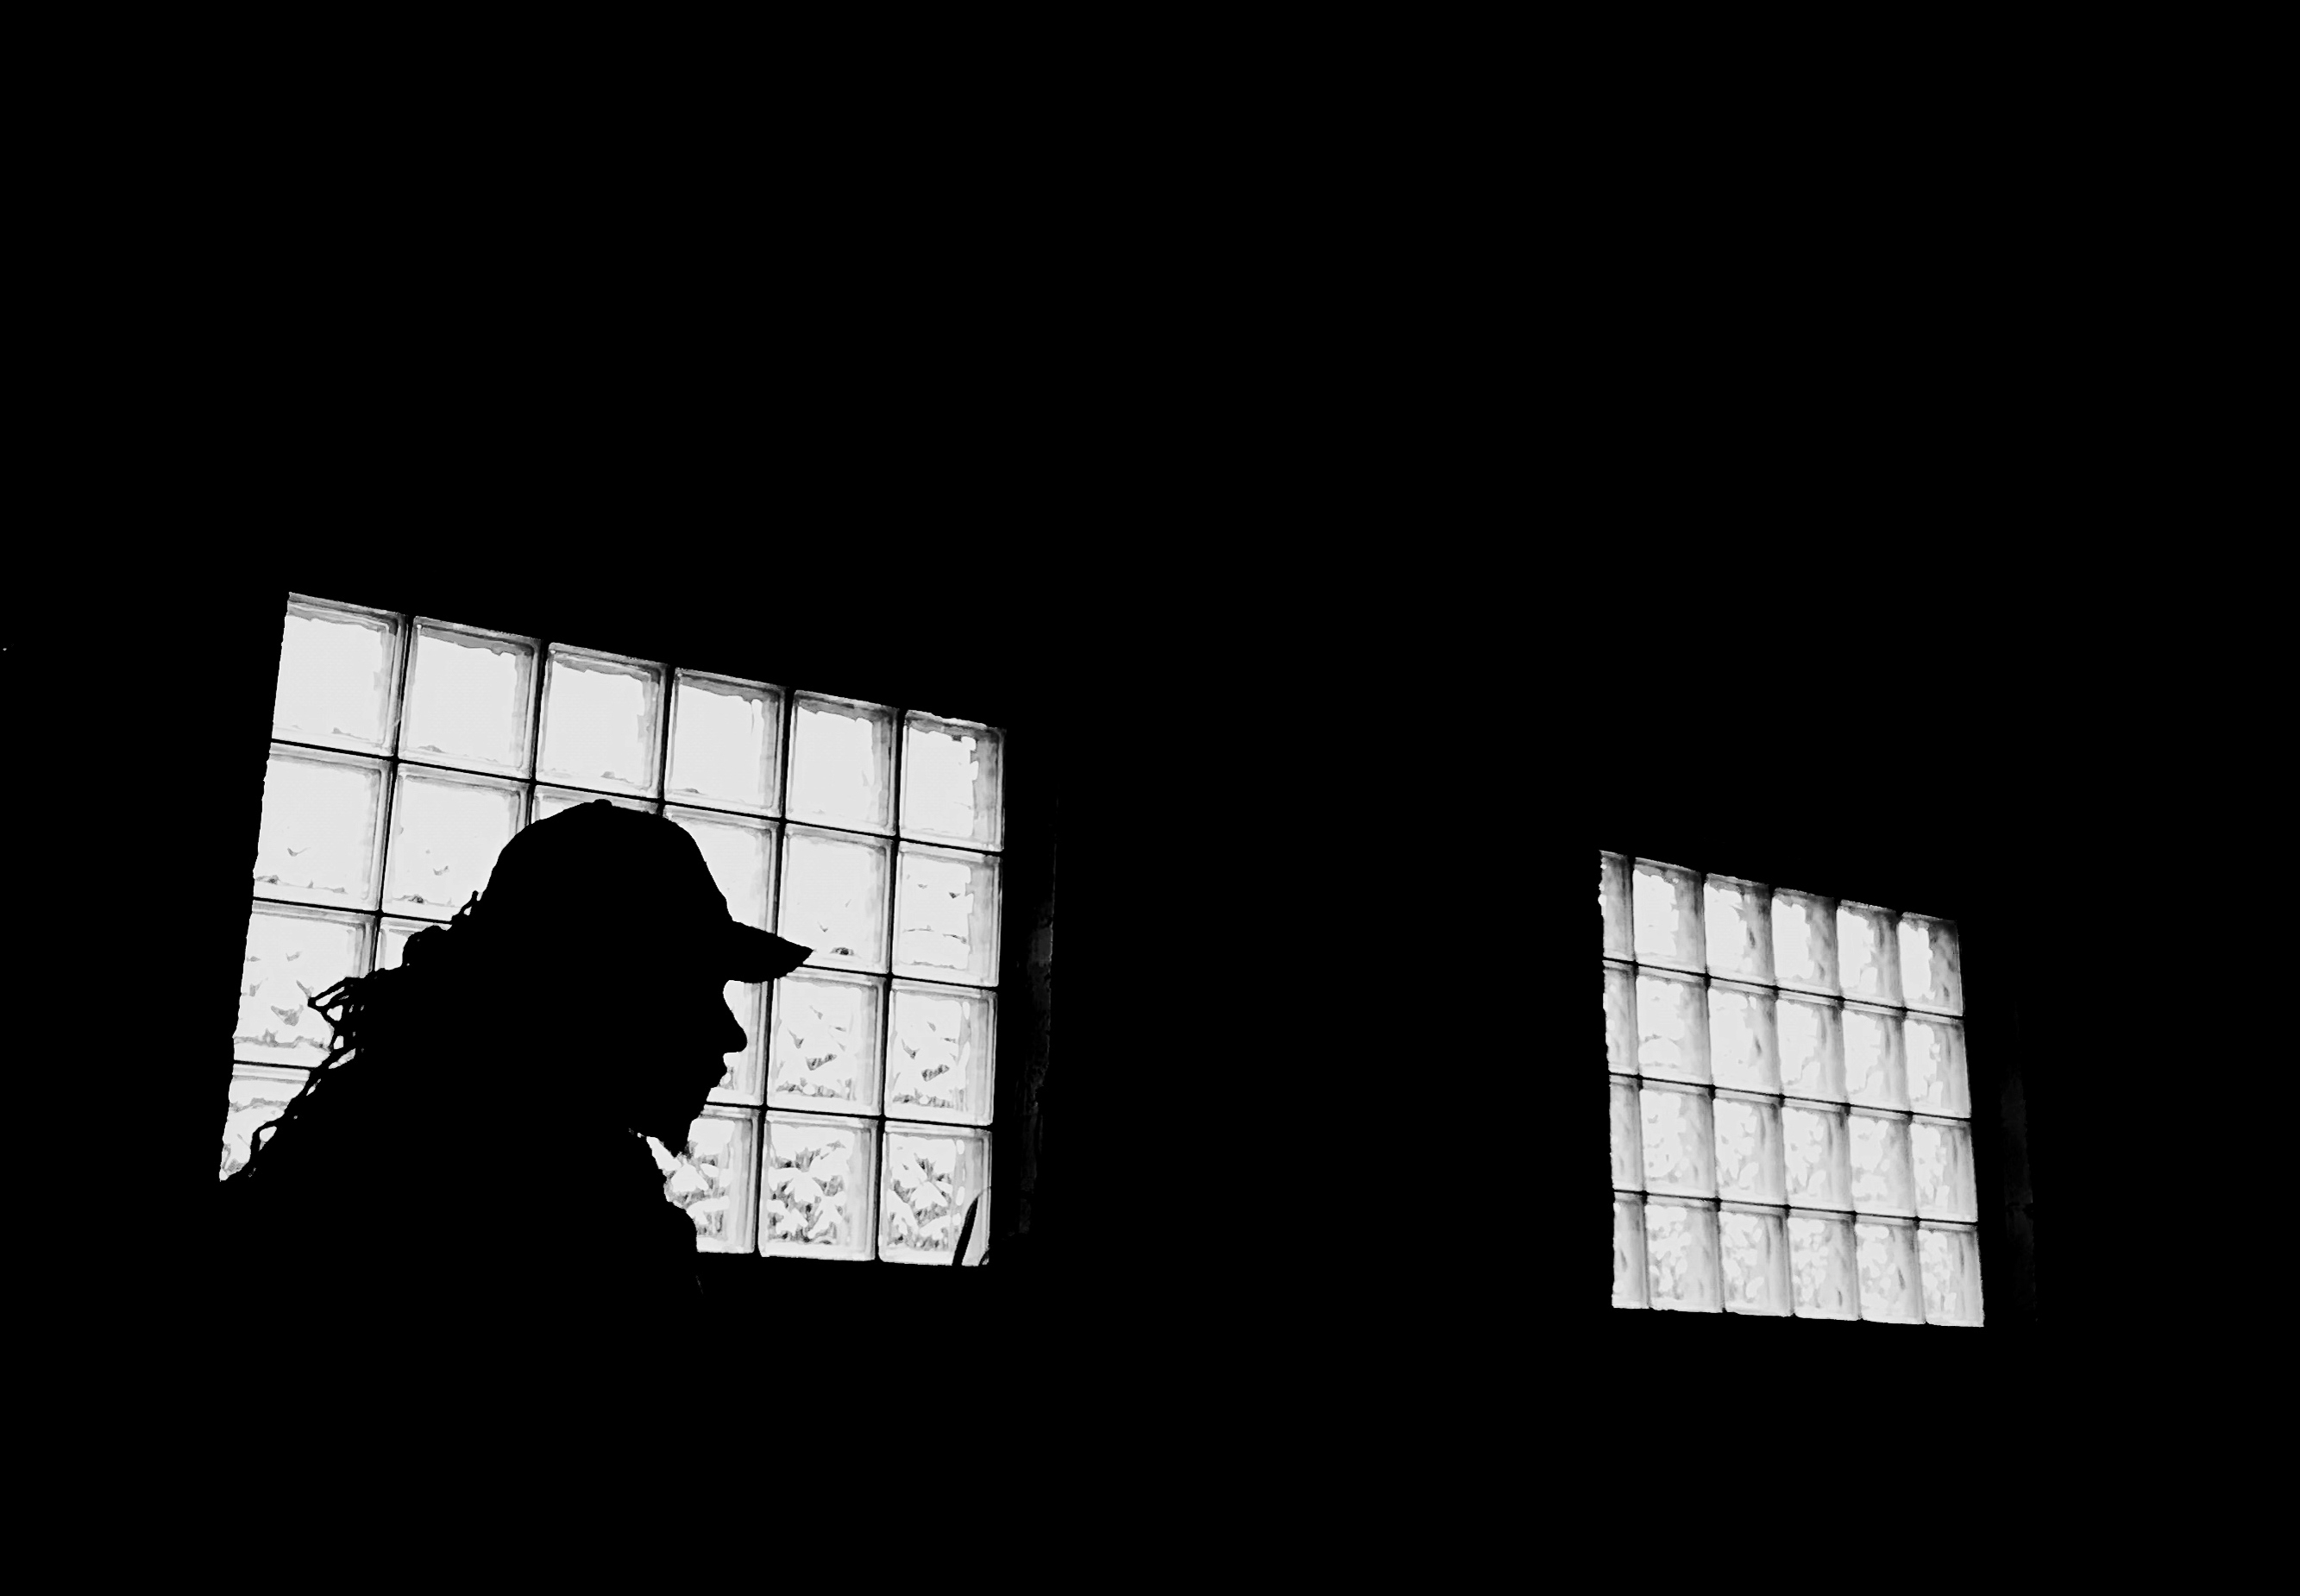 8 secrets for black and white silhouette photography on iphone